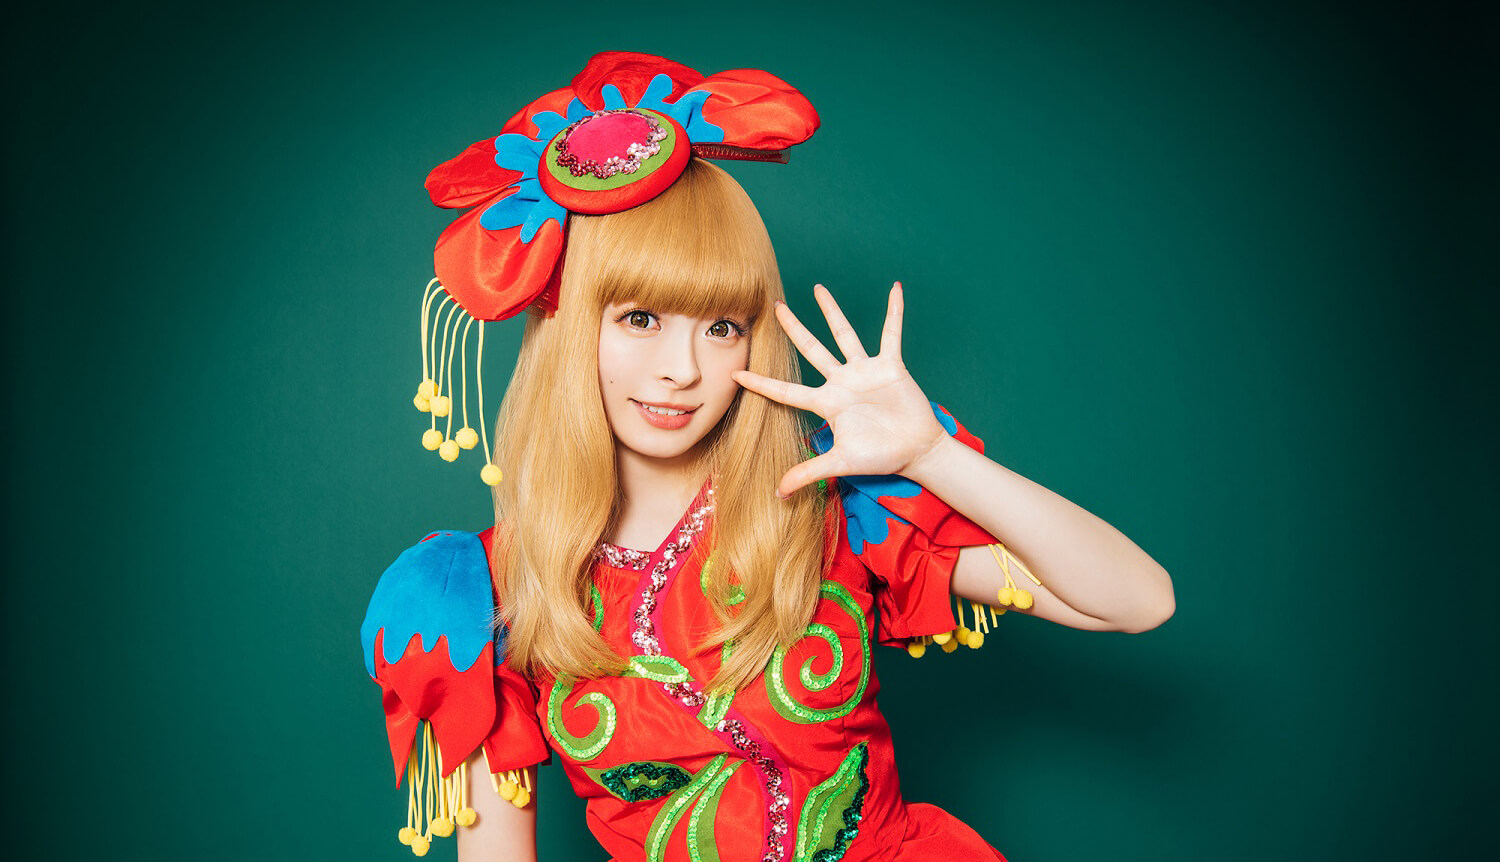 """Kyary Pamyu Pamyu's 3rd World Tour """"KPP 5iVE YEARS MONSTER WORLD TOUR 2016"""" starts this week! PR video also released!"""